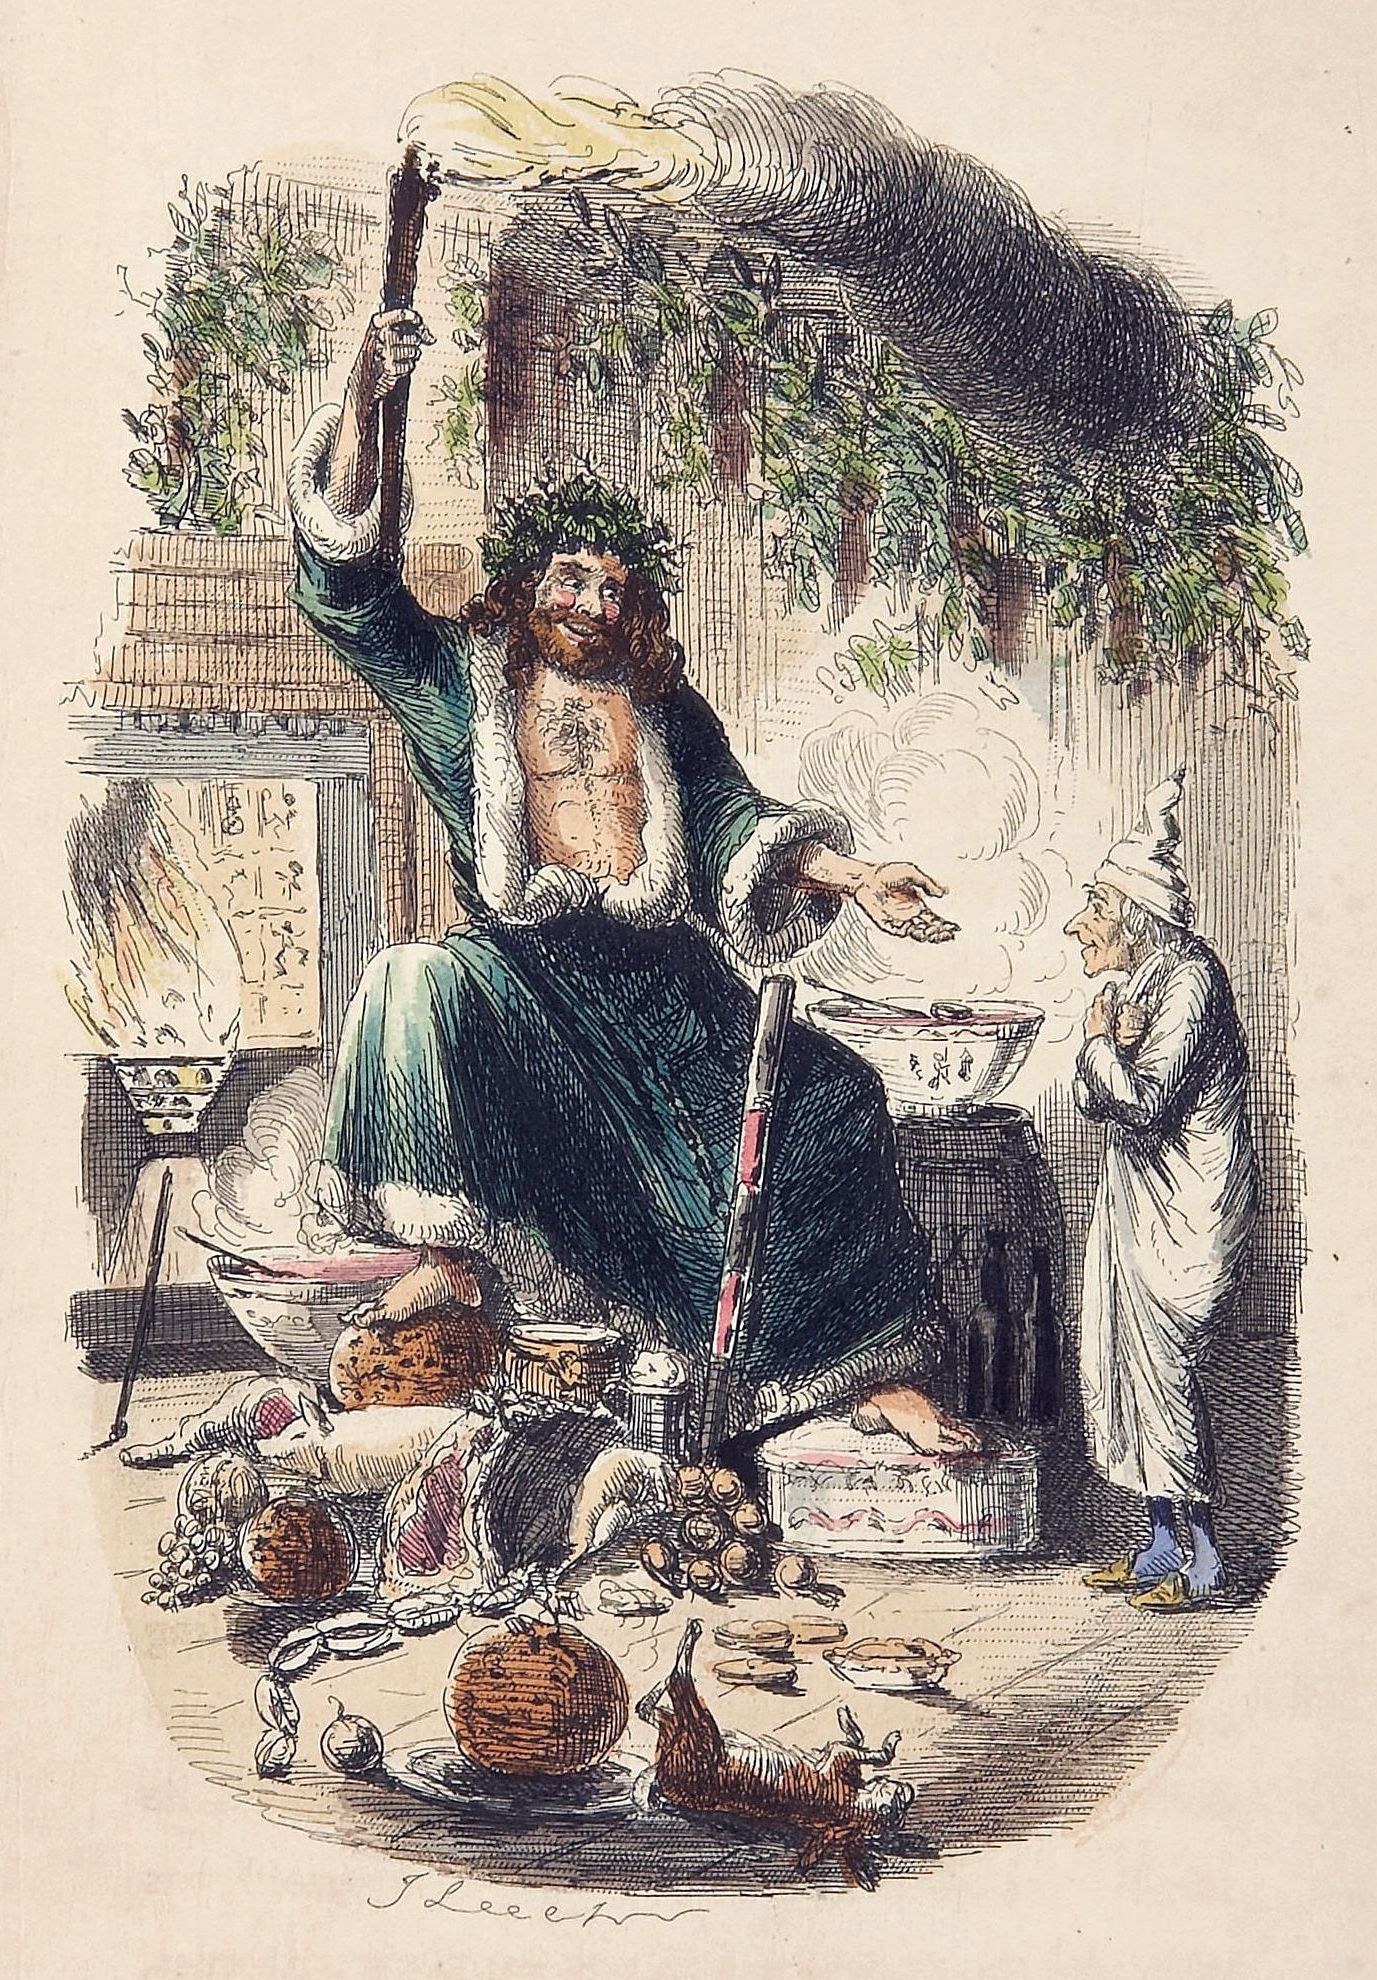 Ebenezer Scrooge and the Ghost of Christmas Present. From Charles Dickens' A Christmas Carol, 1843.